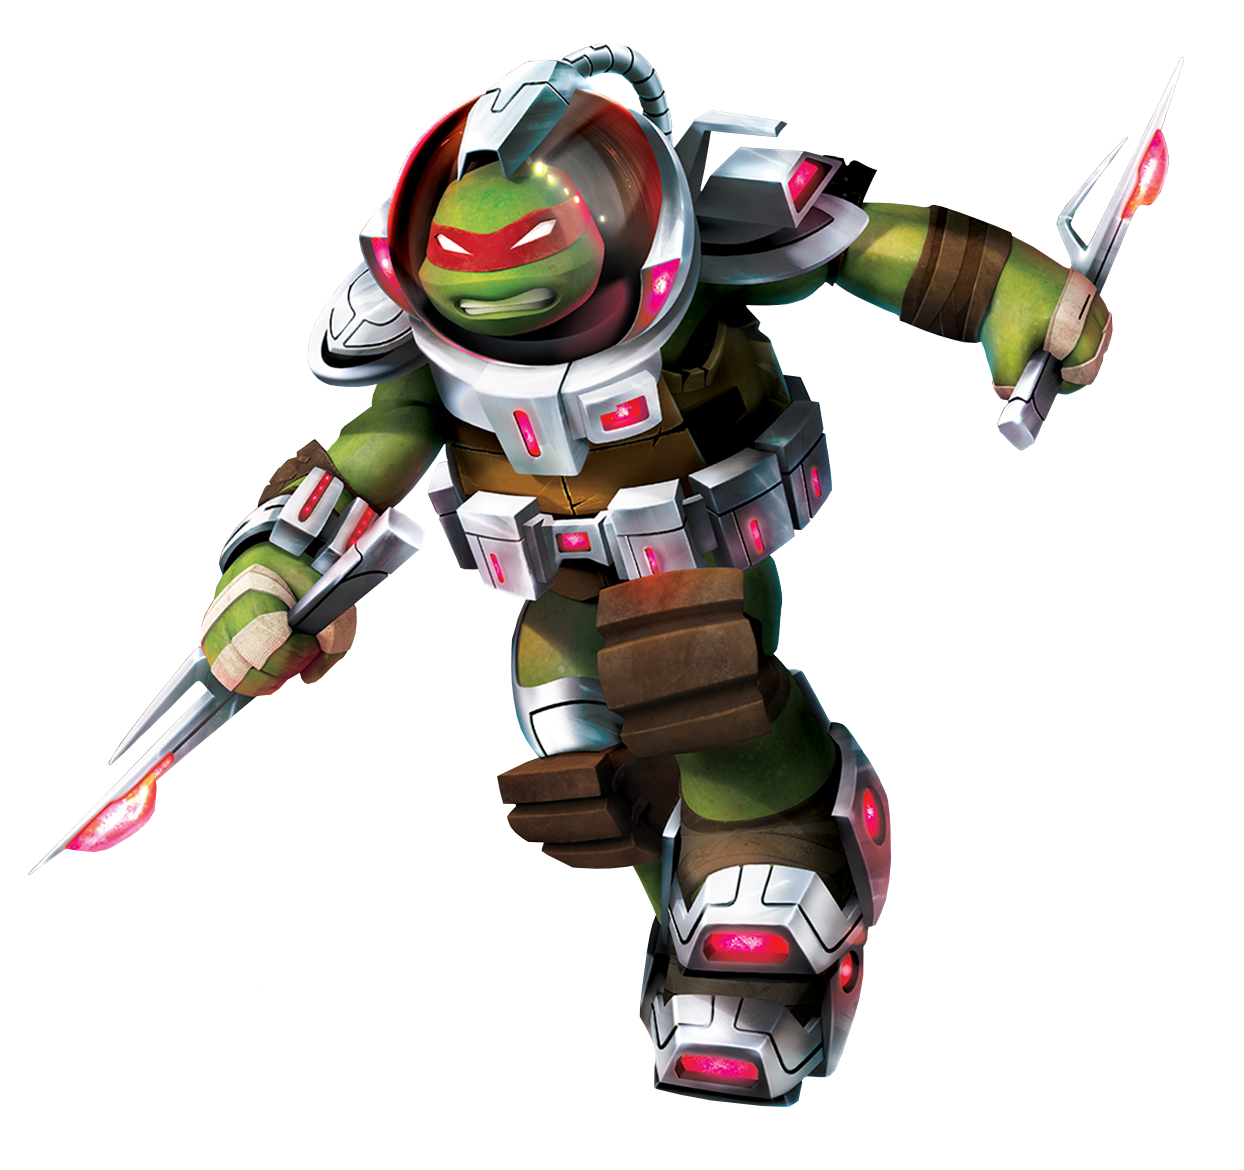 raphael s space suit tmnt wiki fandom powered by wikia ninja turtle clip art coloring ninja turtle clip art orange